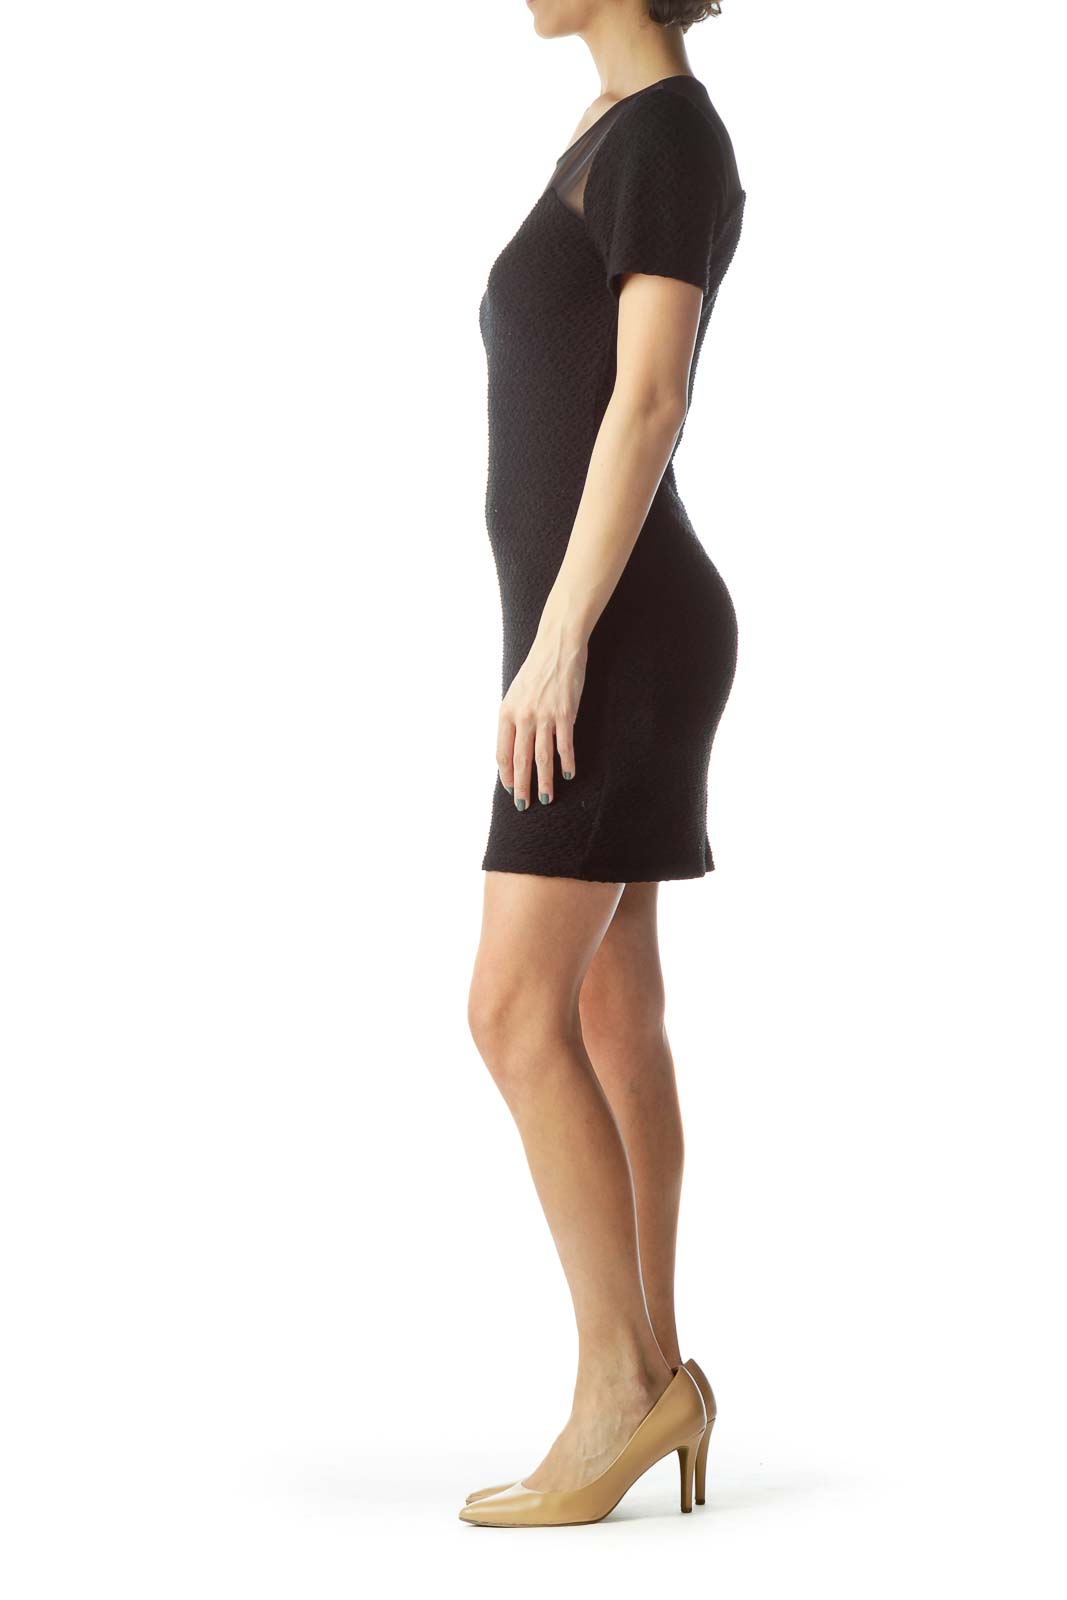 Black Bodycon Dress with Sheer Top